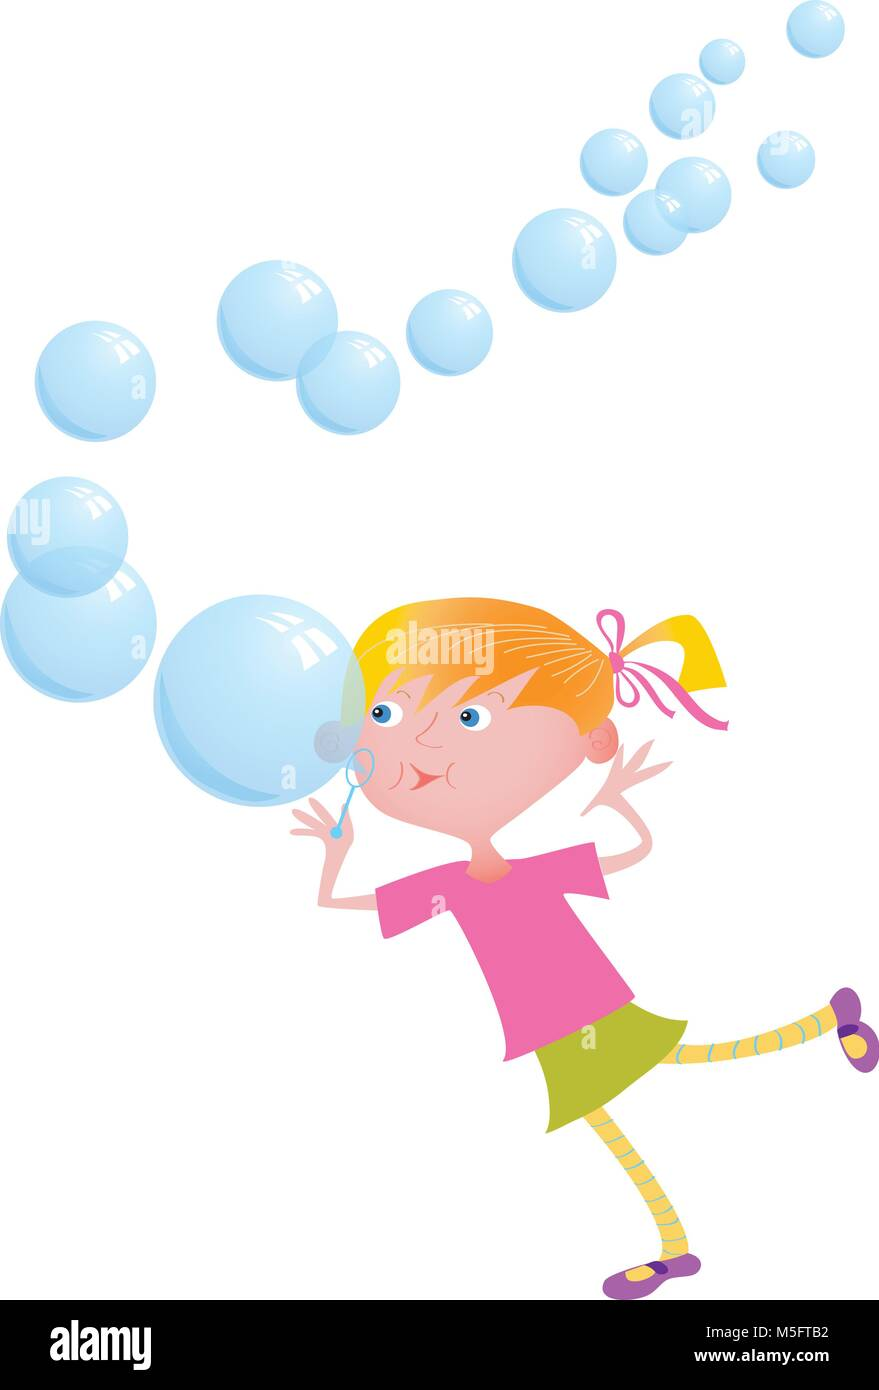 A cartoon girl blowing colorful bubbles - Stock Vector